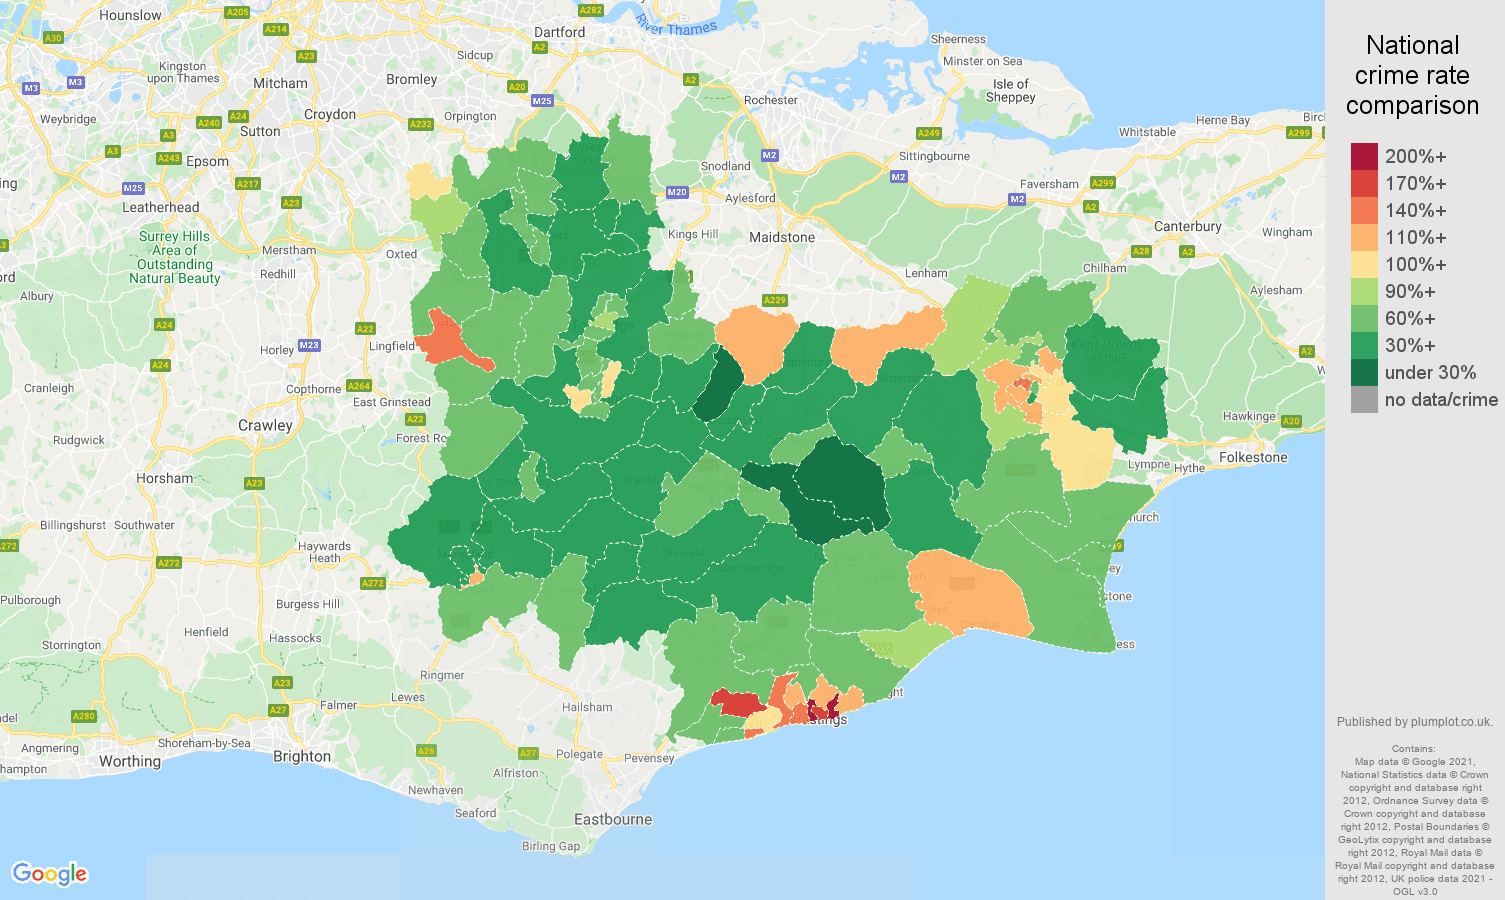 Tonbridge antisocial behaviour crime rate comparison map